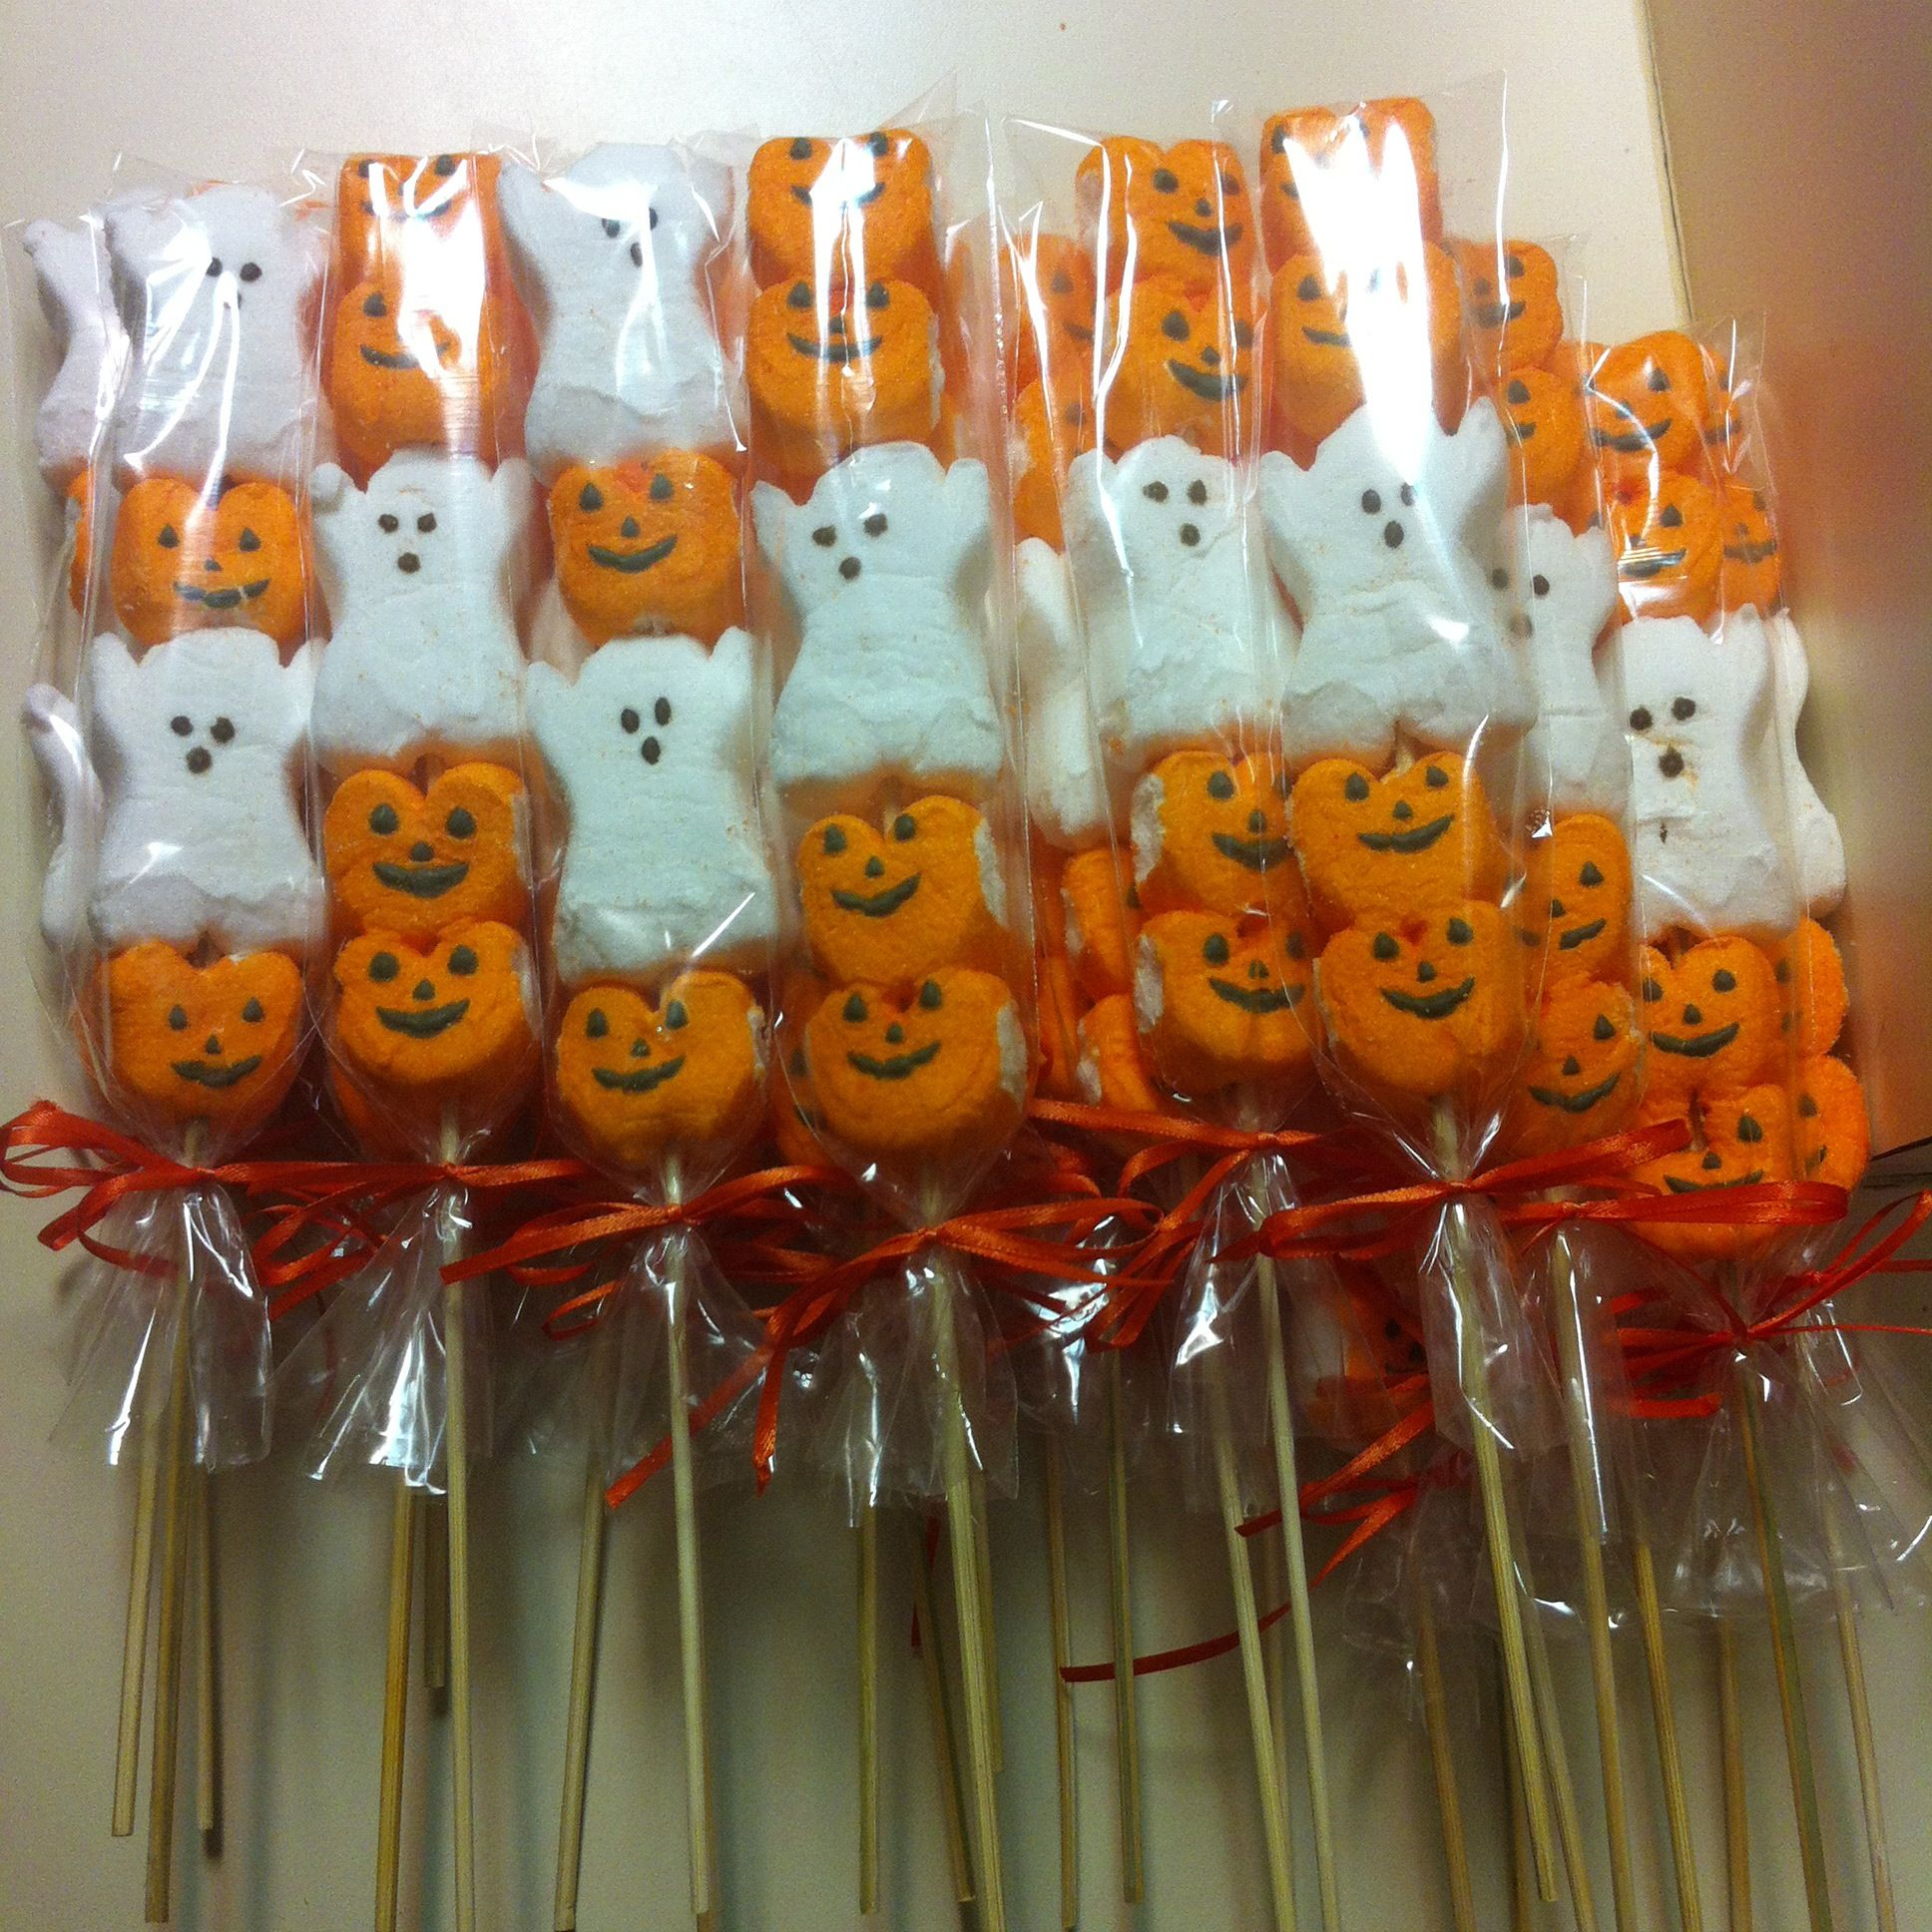 Halloween Kabobs Halloween Treats Pinterest Kabobs, Halloween - Halloween Decorations For Kids